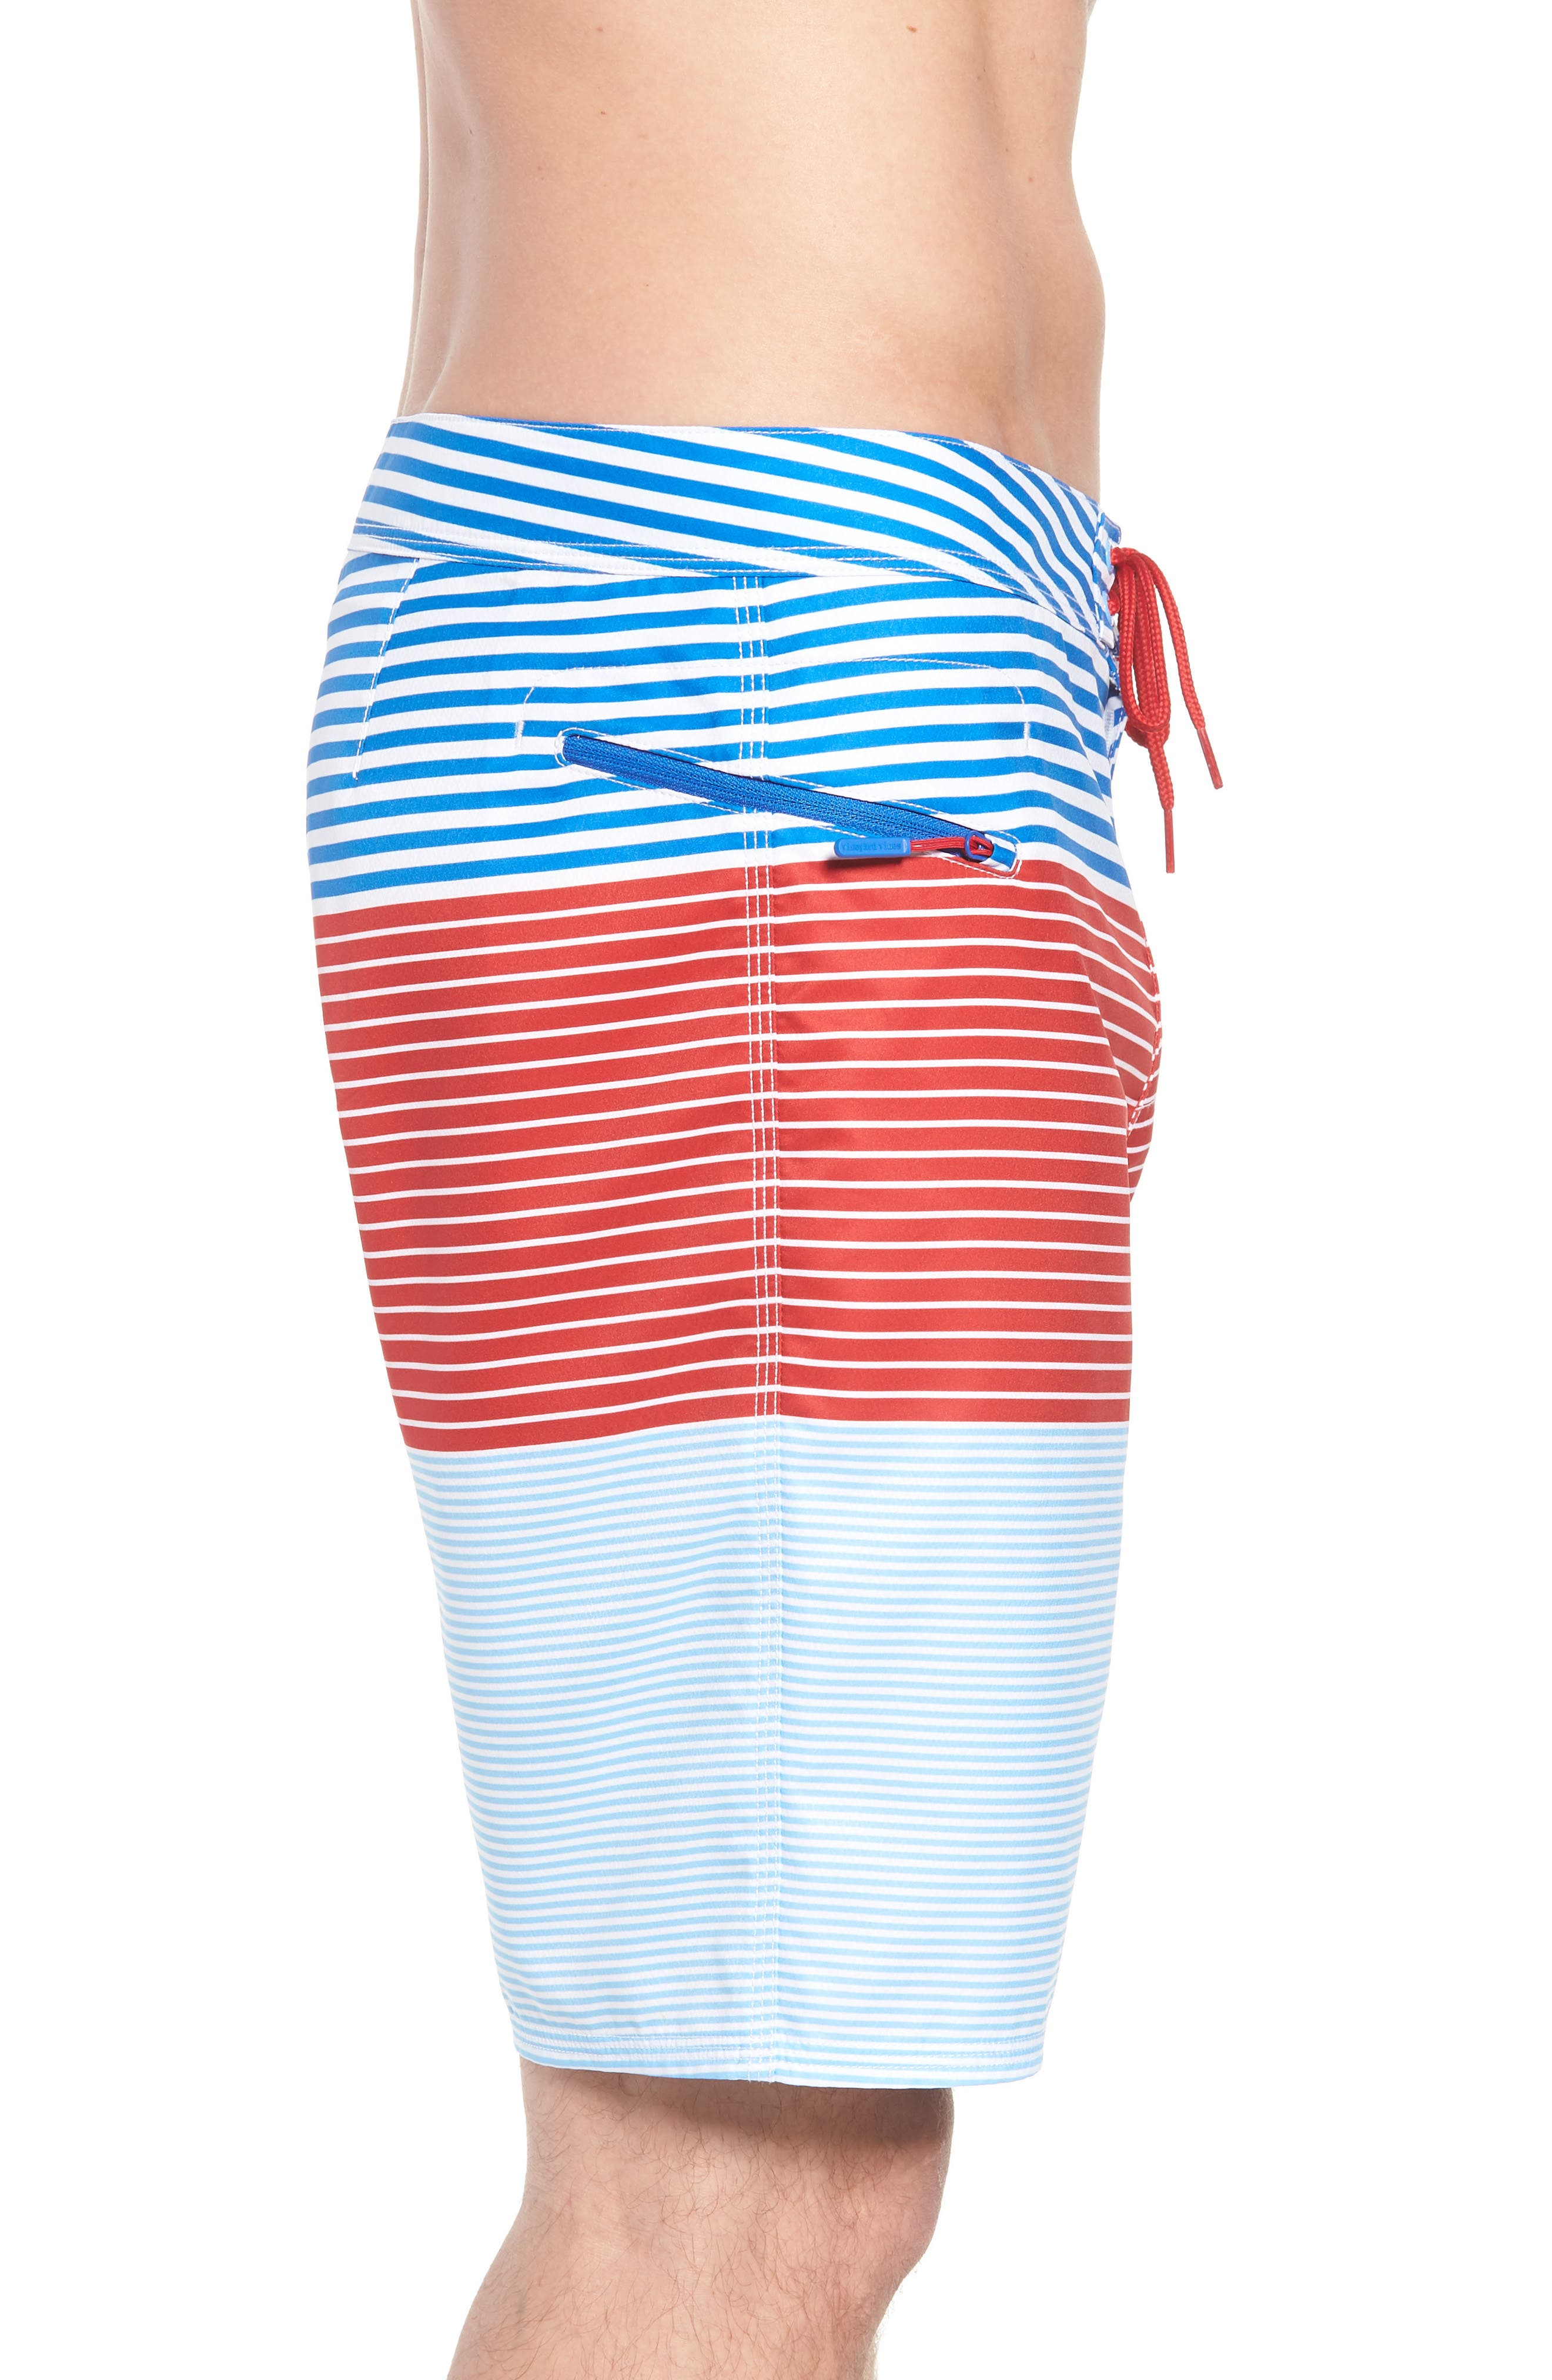 Whale Harbor Stripe Board Shorts,                             Alternate thumbnail 4, color,                             427